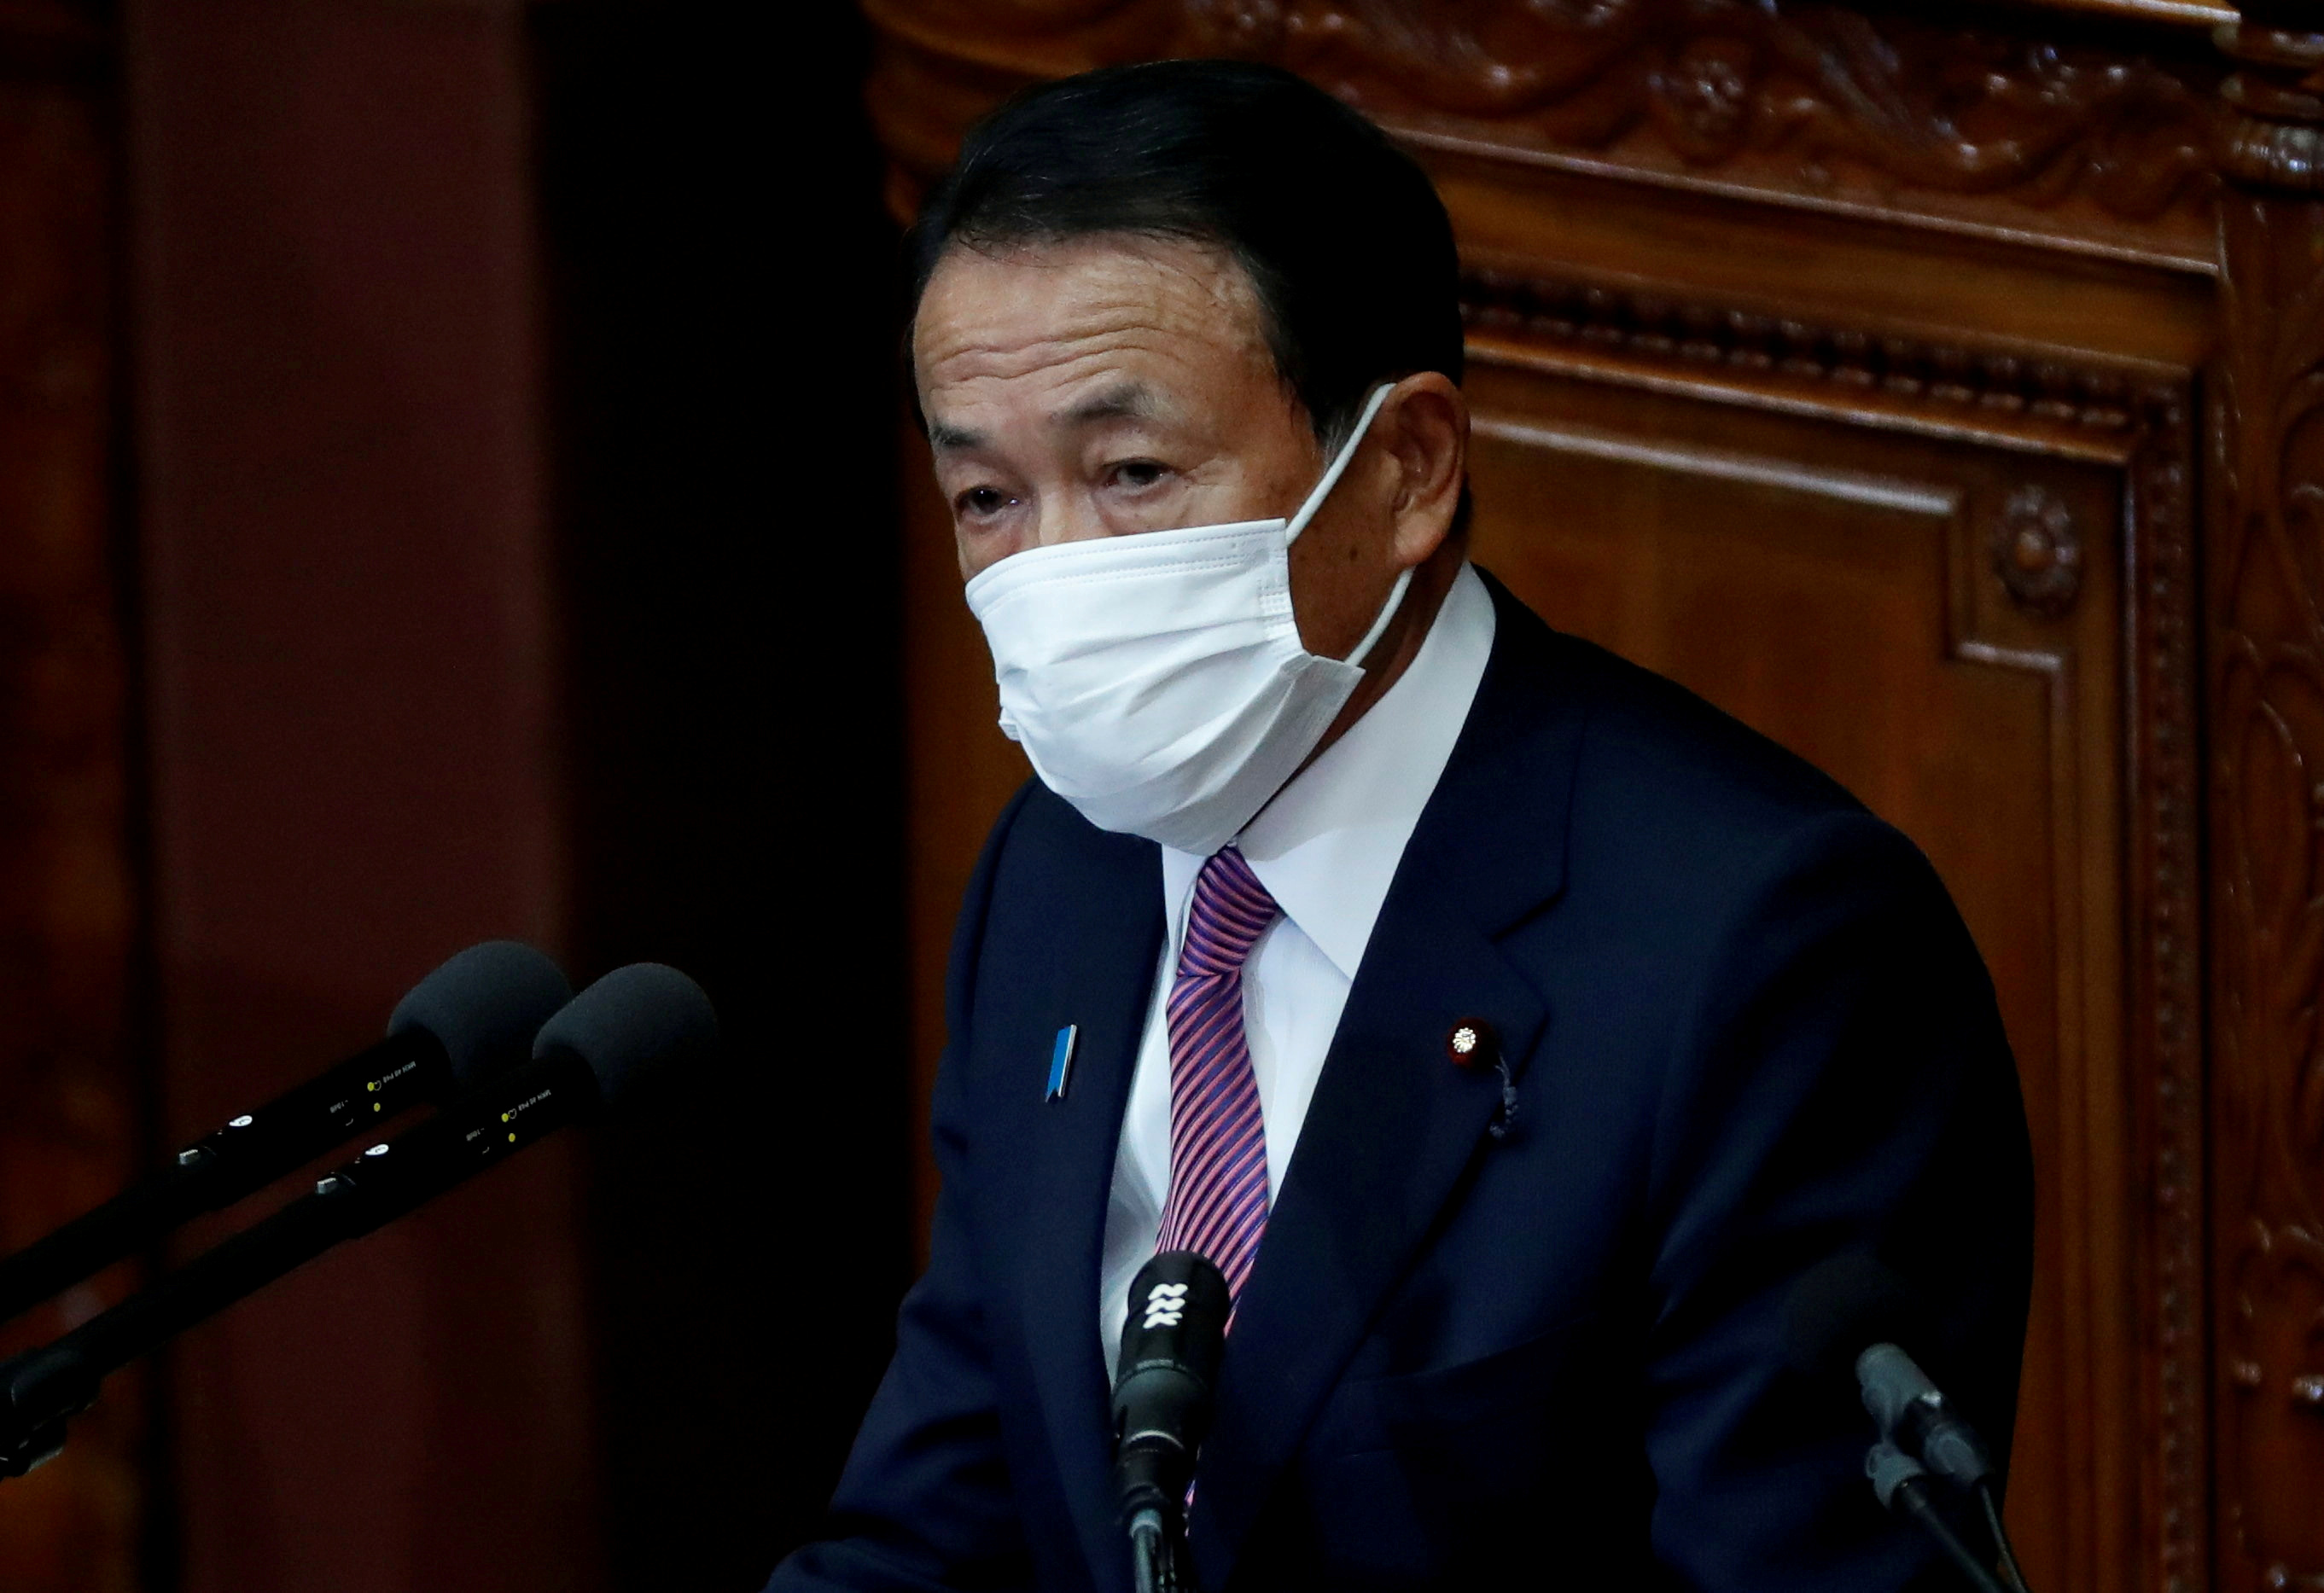 Japan's Deputy Prime Minister and Finance Minister Taro Aso, wearing a protective face mask, delivers his policy speech at the opening of an ordinary session of the parliament in Tokyo, Japan January 18, 2021. REUTERS/Issei Kato/File Photo